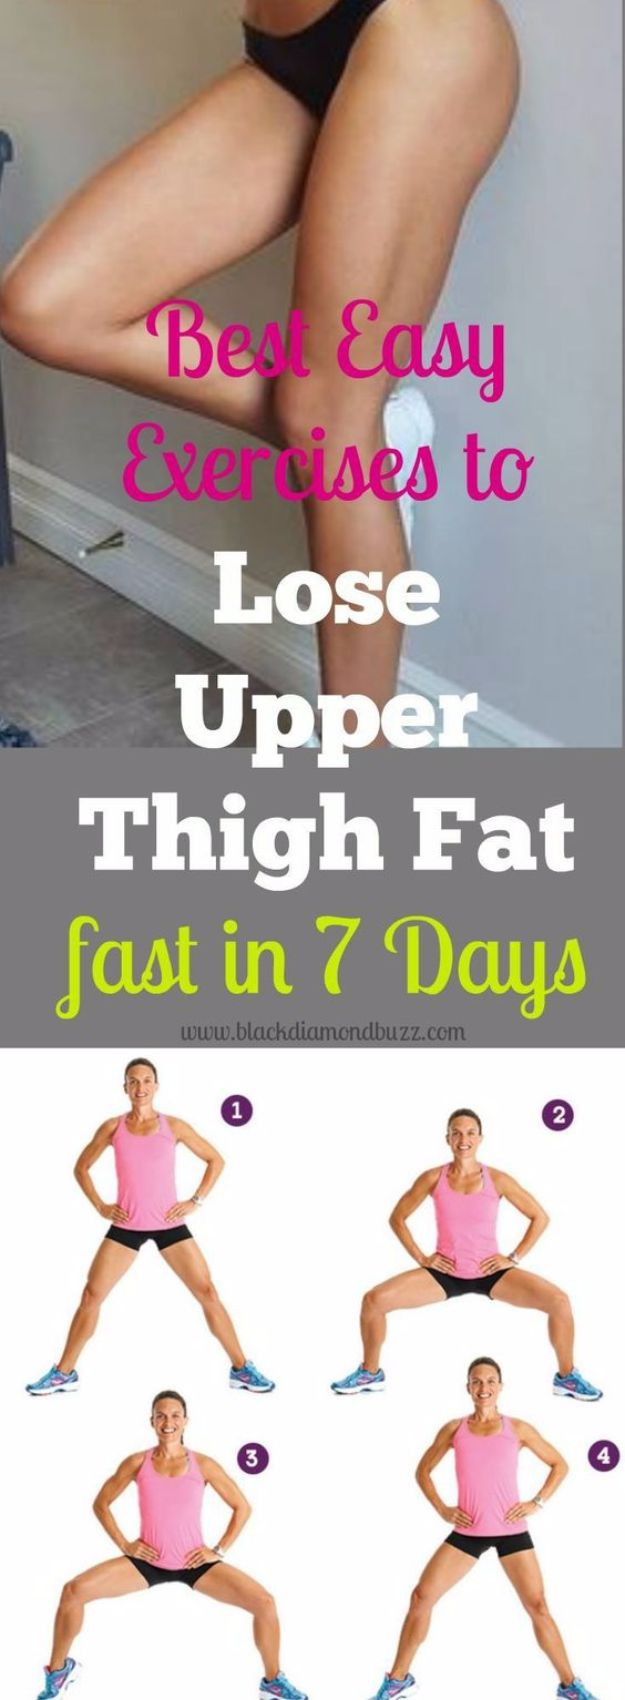 Best Exercises for 2018 - Lose Upper Thigh Fat Fast - Easy At Home Exercises - Quick Exercise Tutorials to Try at Lunch Break - Ways To Get In Shape - Butt, Abs, Arms, Legs, Thighs, Tummy